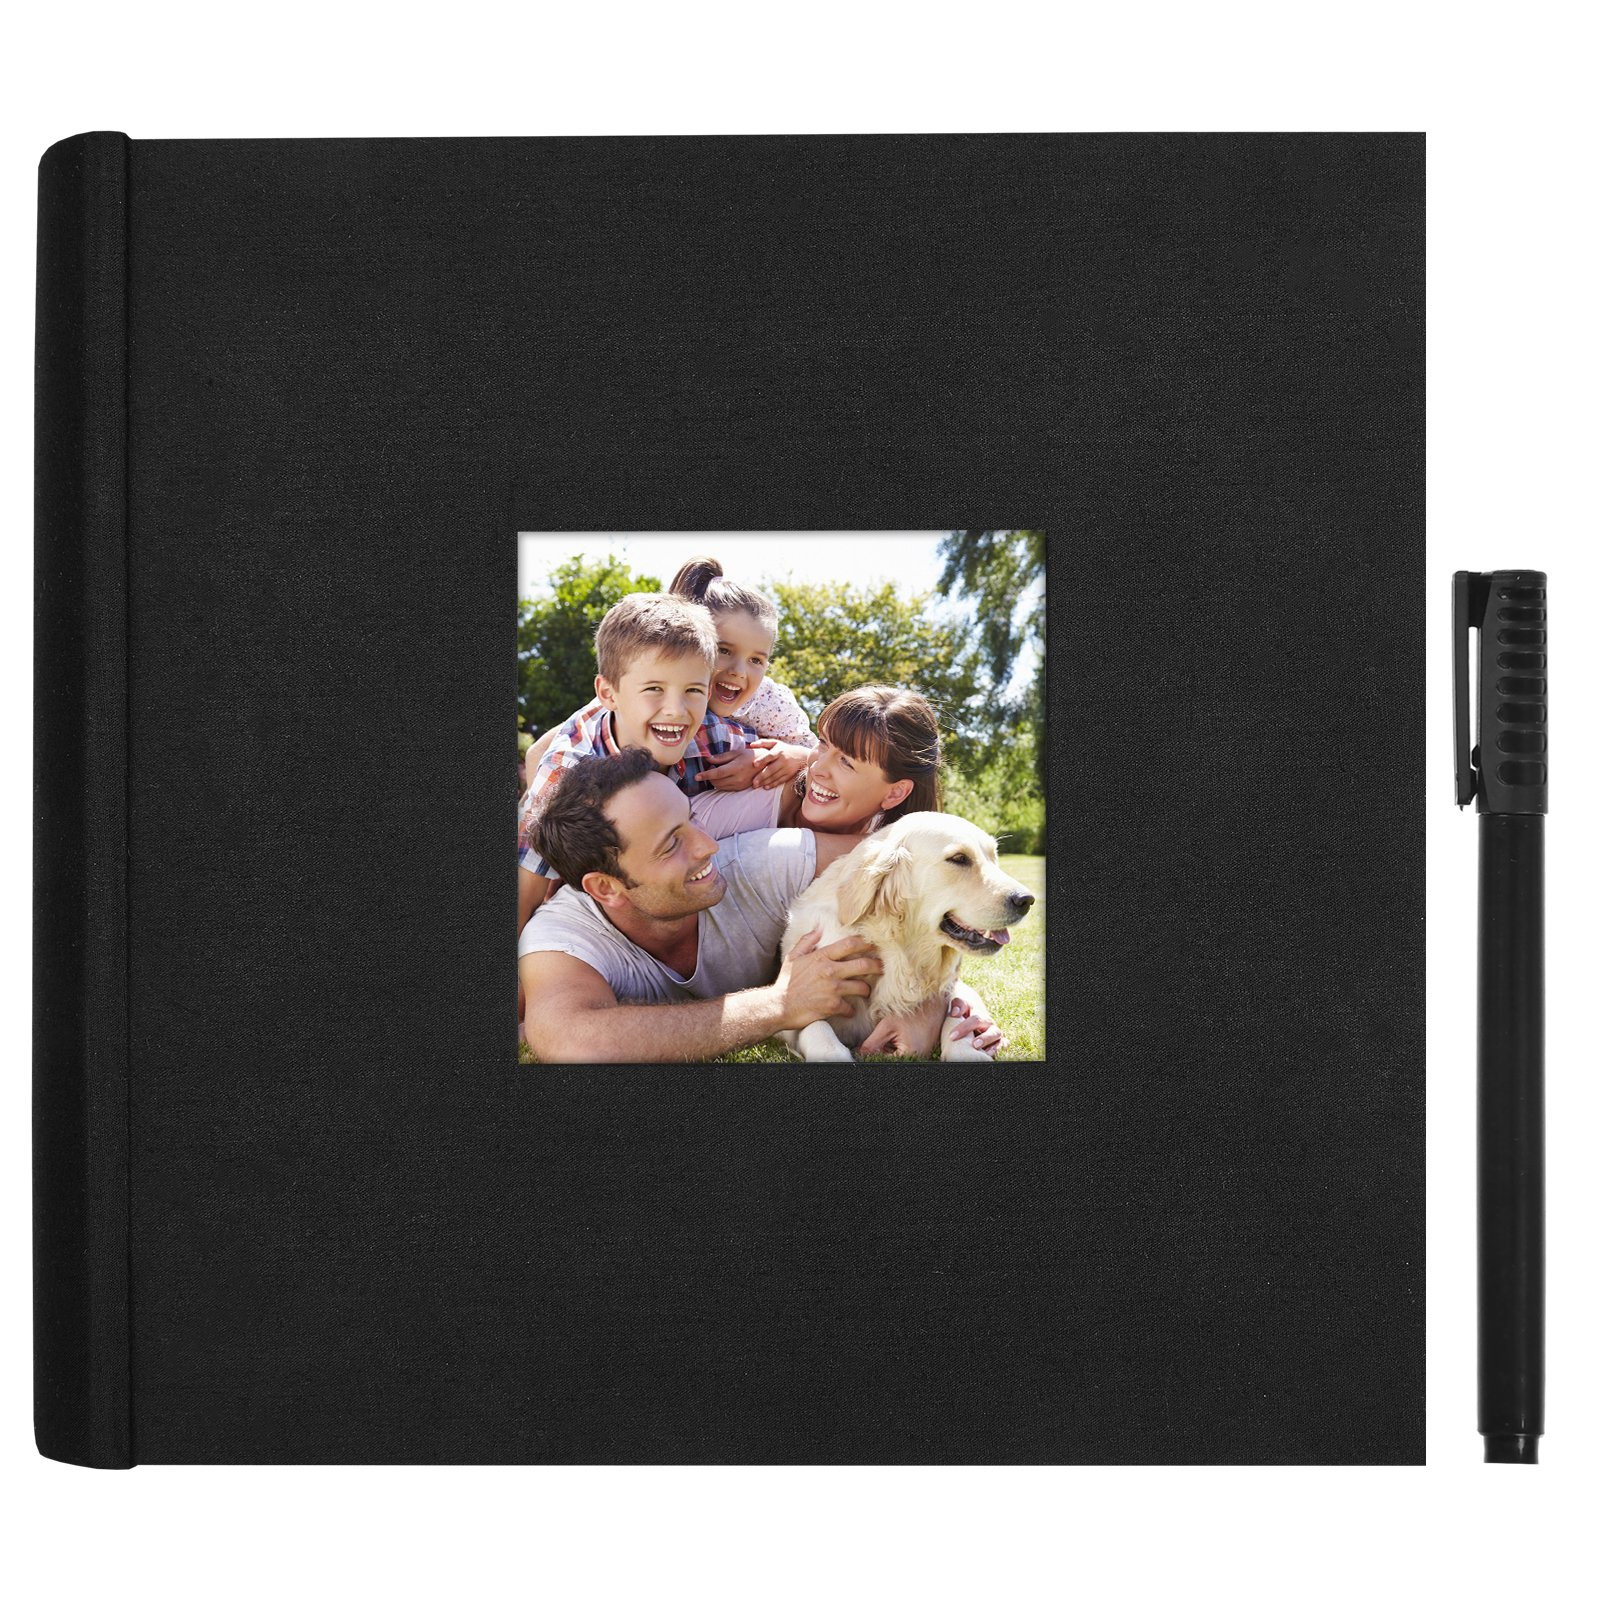 Americanflat Black Photo Album - Holds 200 Photos - Fits Photos 4x6 Inches - Ultra-Fine Tip Pen Included